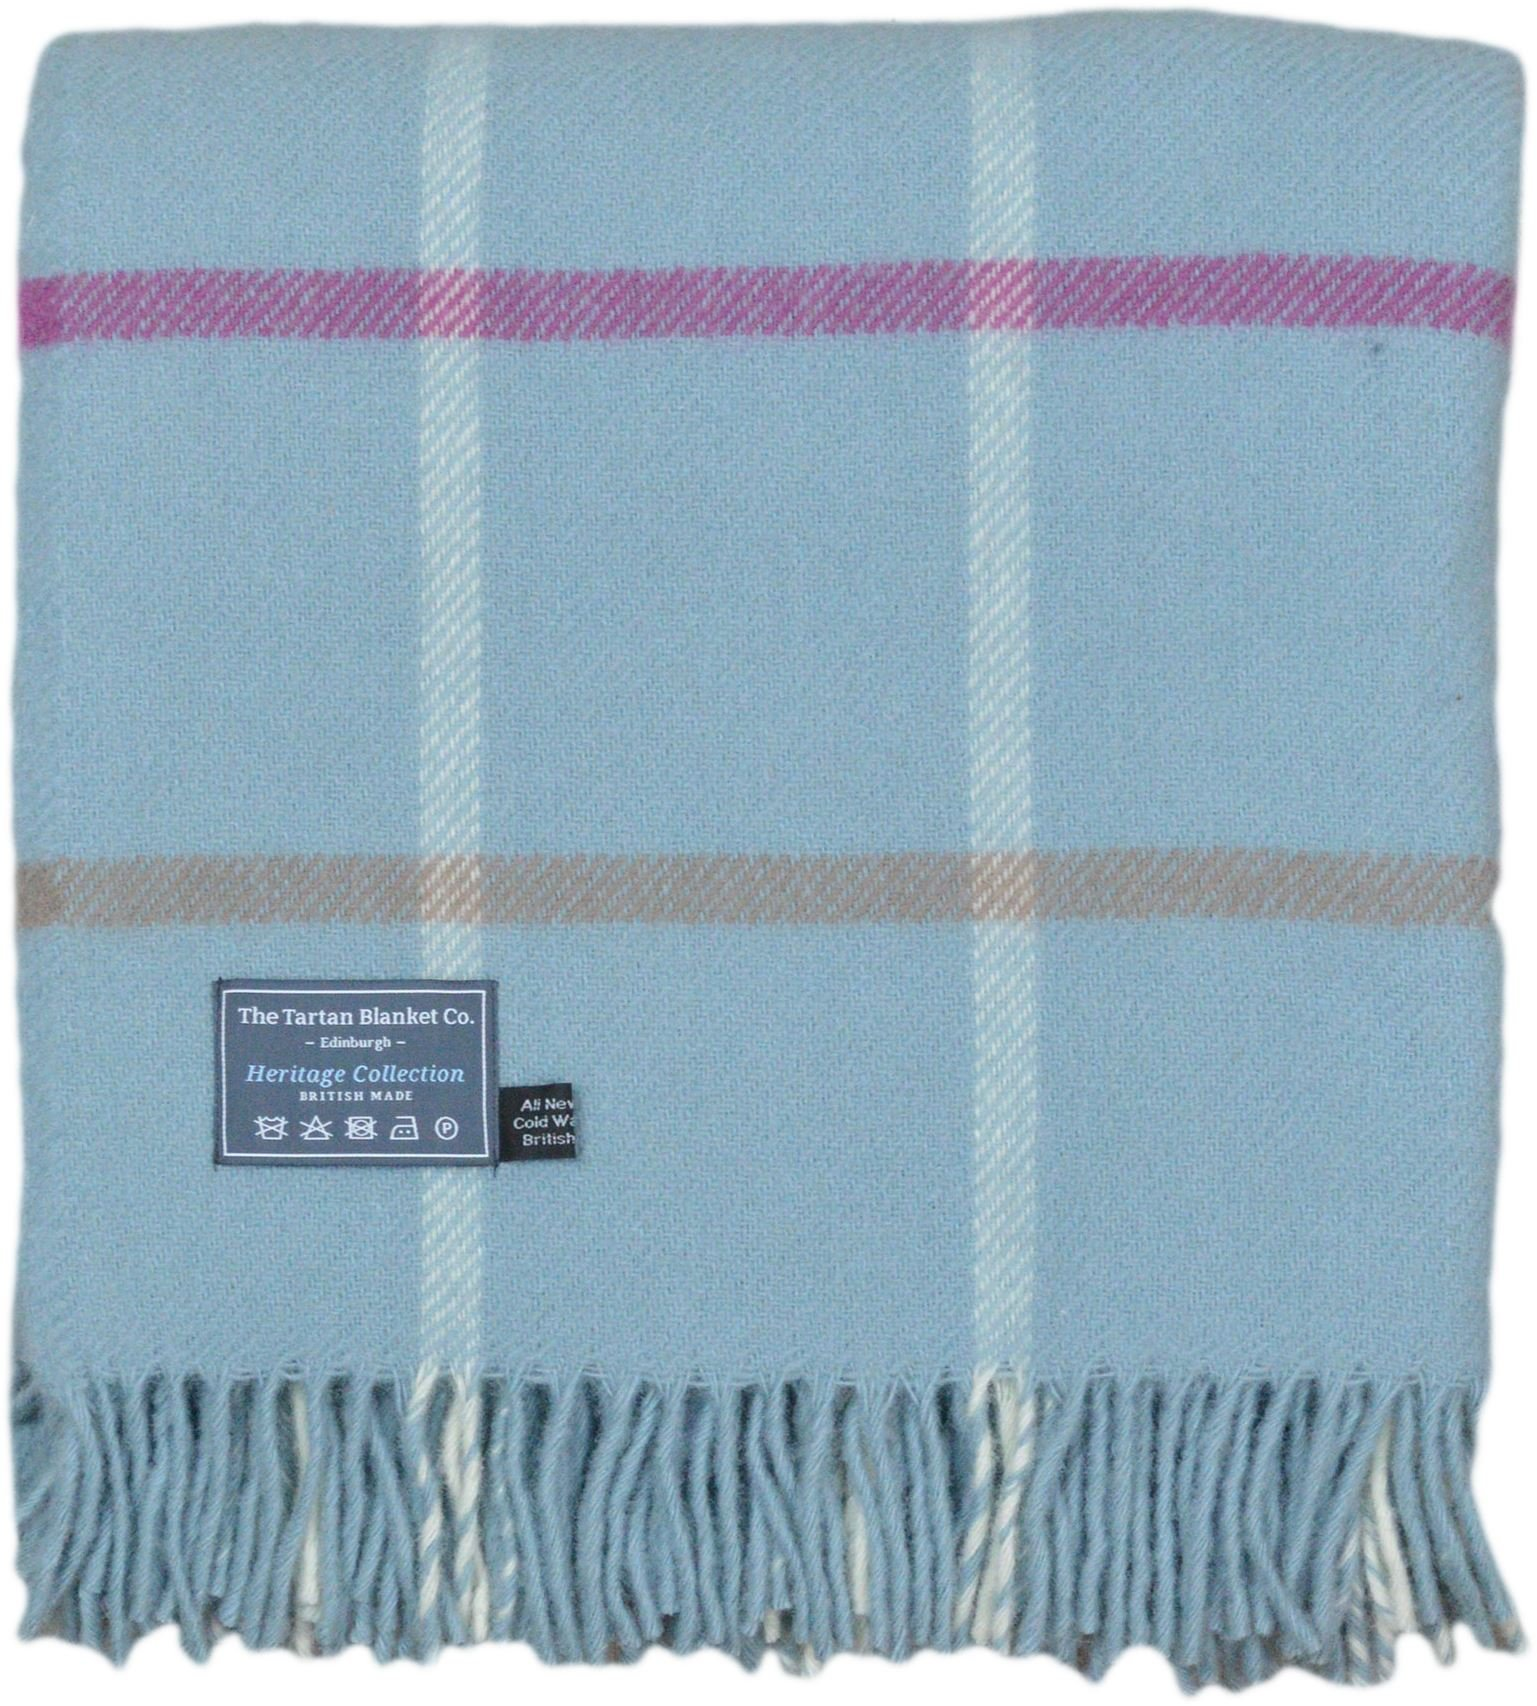 The Tartan Blanket Co. New Wool Knee Blanket Duck Egg Blue Windowpane (30'' x 70'')